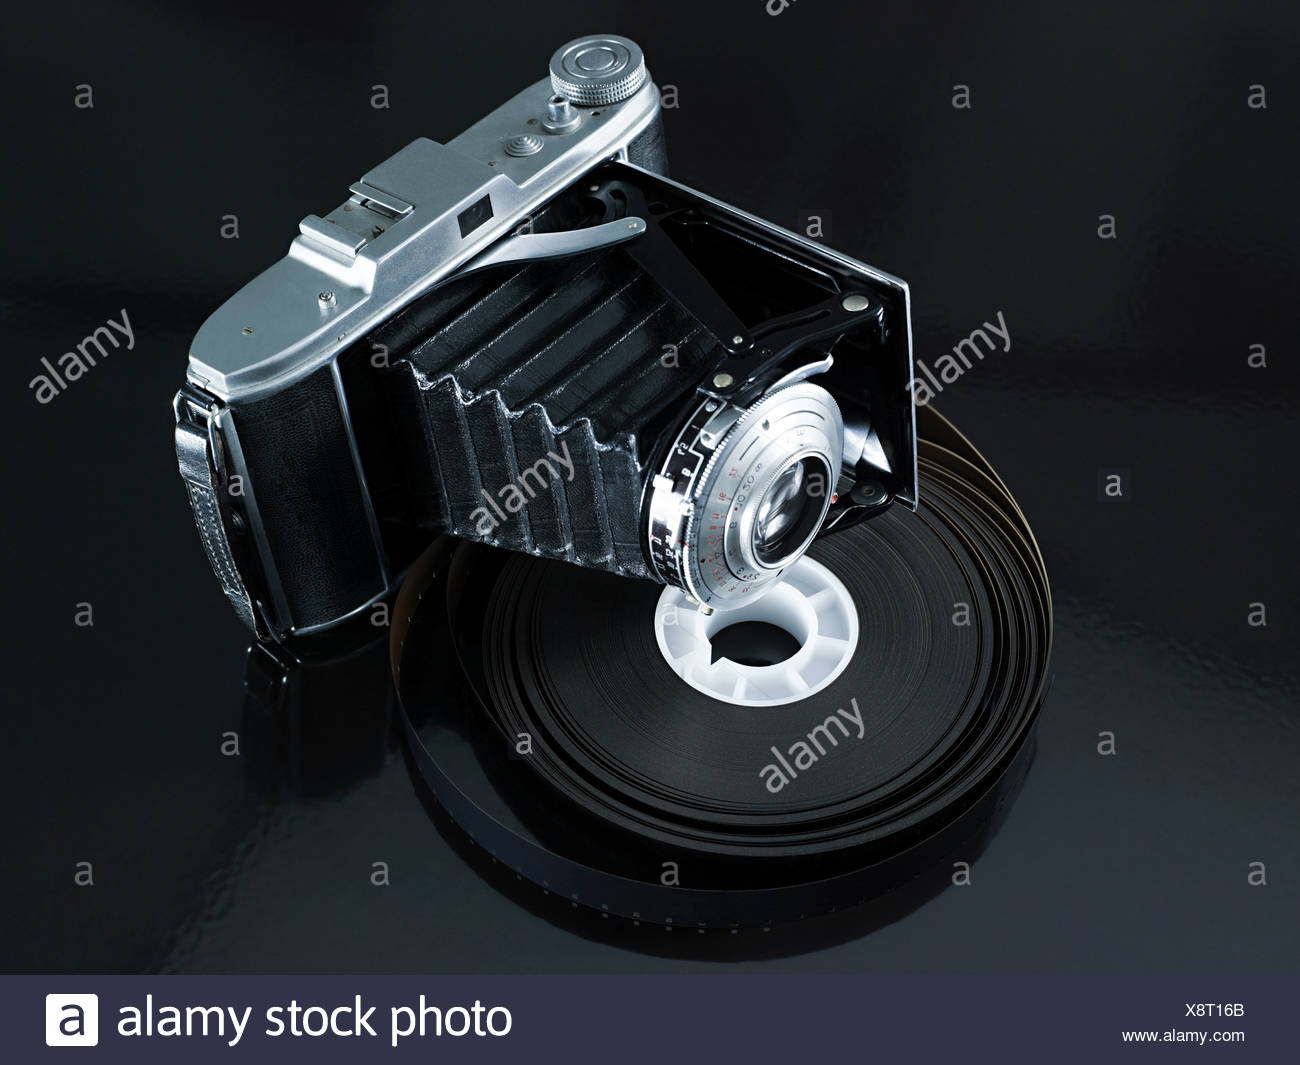 Camera and roll of film - Stock Image